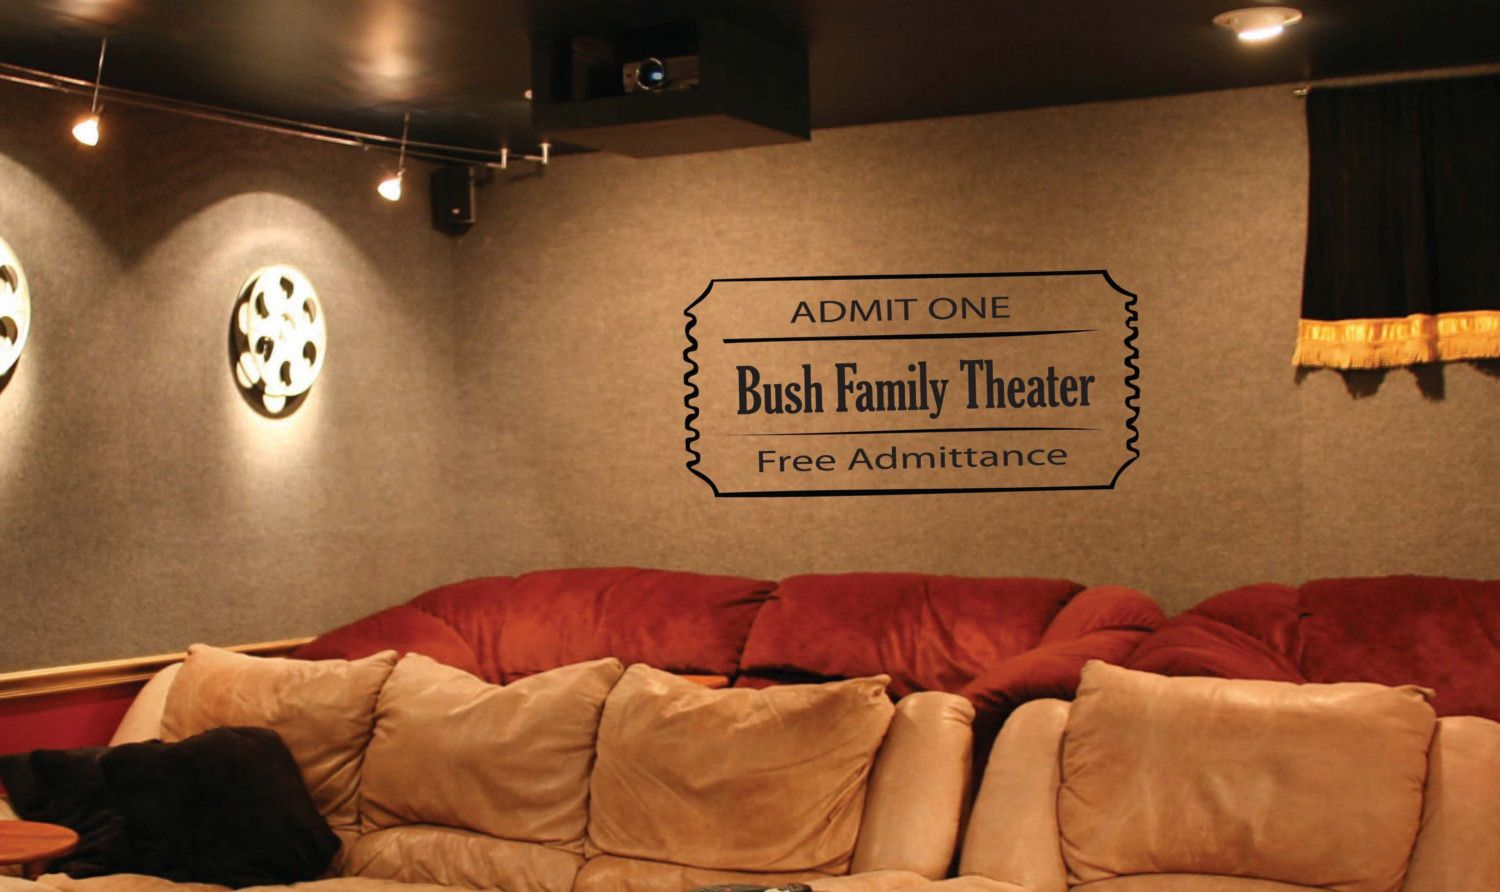 Wall decal home theater movie ticket 000 movie tickets wall vinyl wall decal large movie ticket for home theater aprox size is 15 x amipublicfo Images